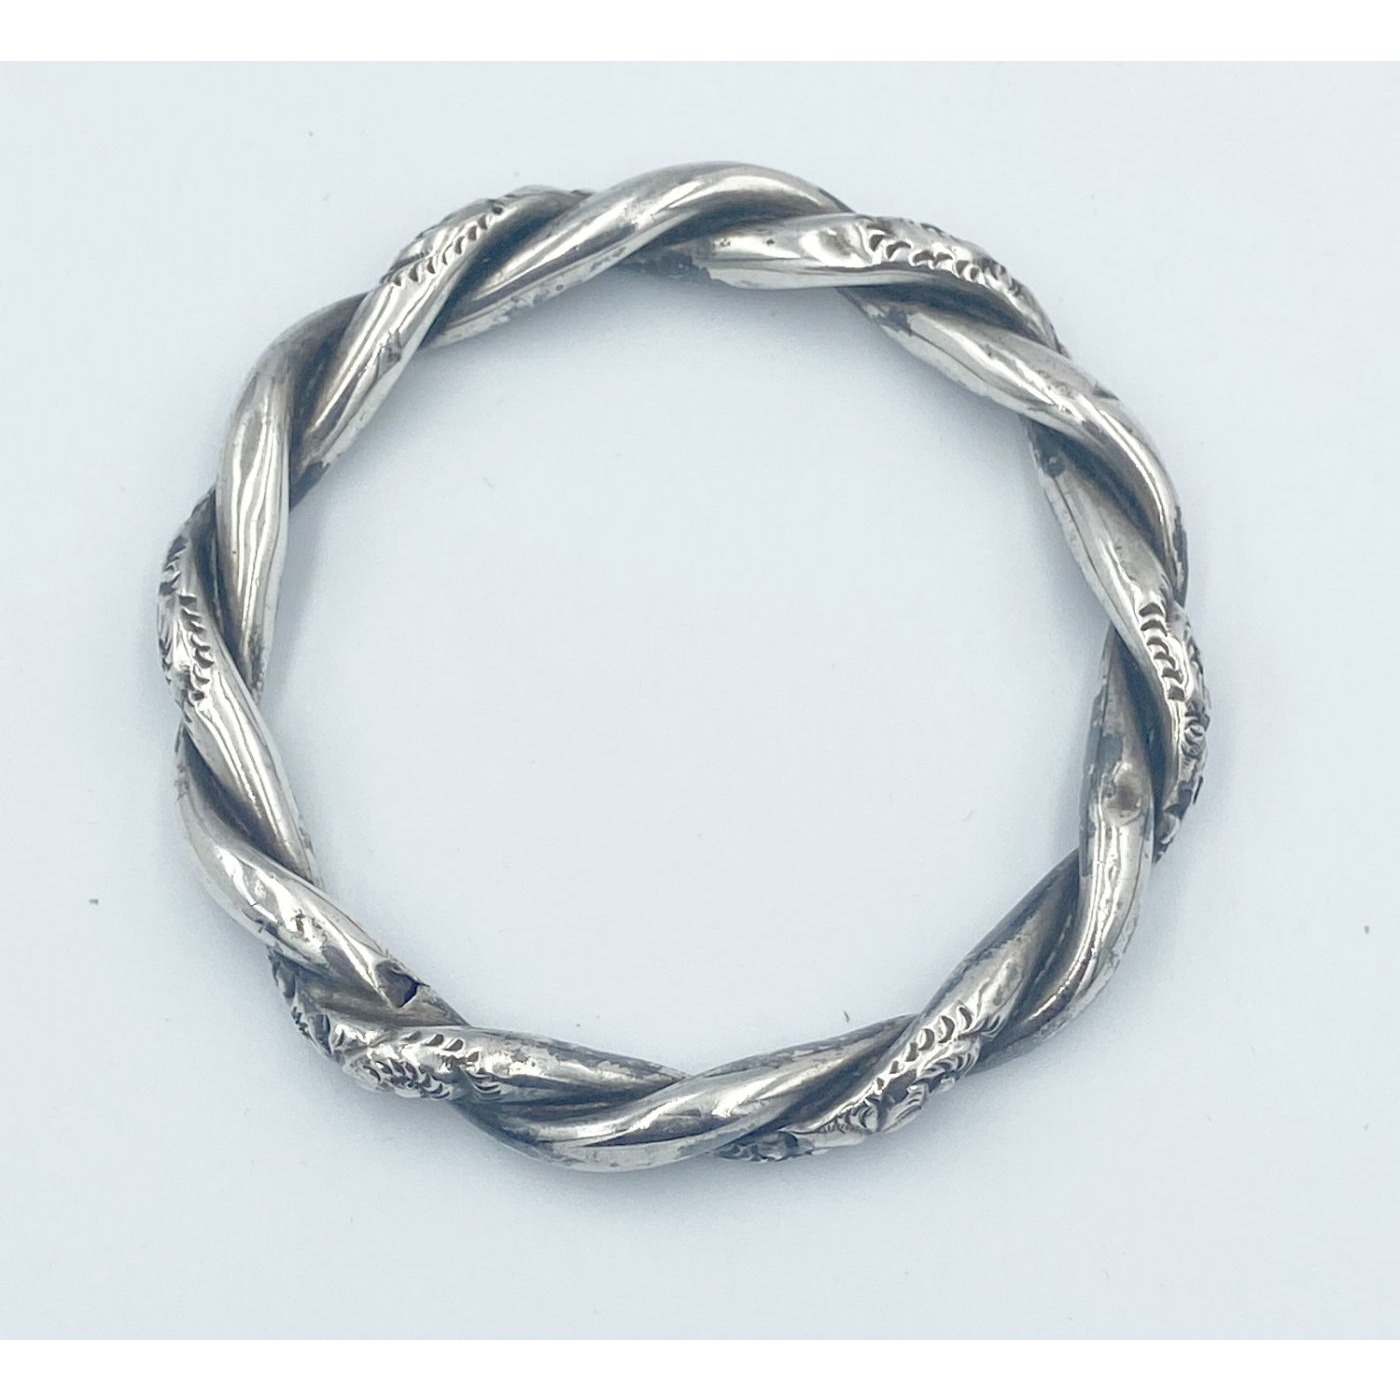 Outstanding Slightly Larger Sterling Silver Twist Bangle